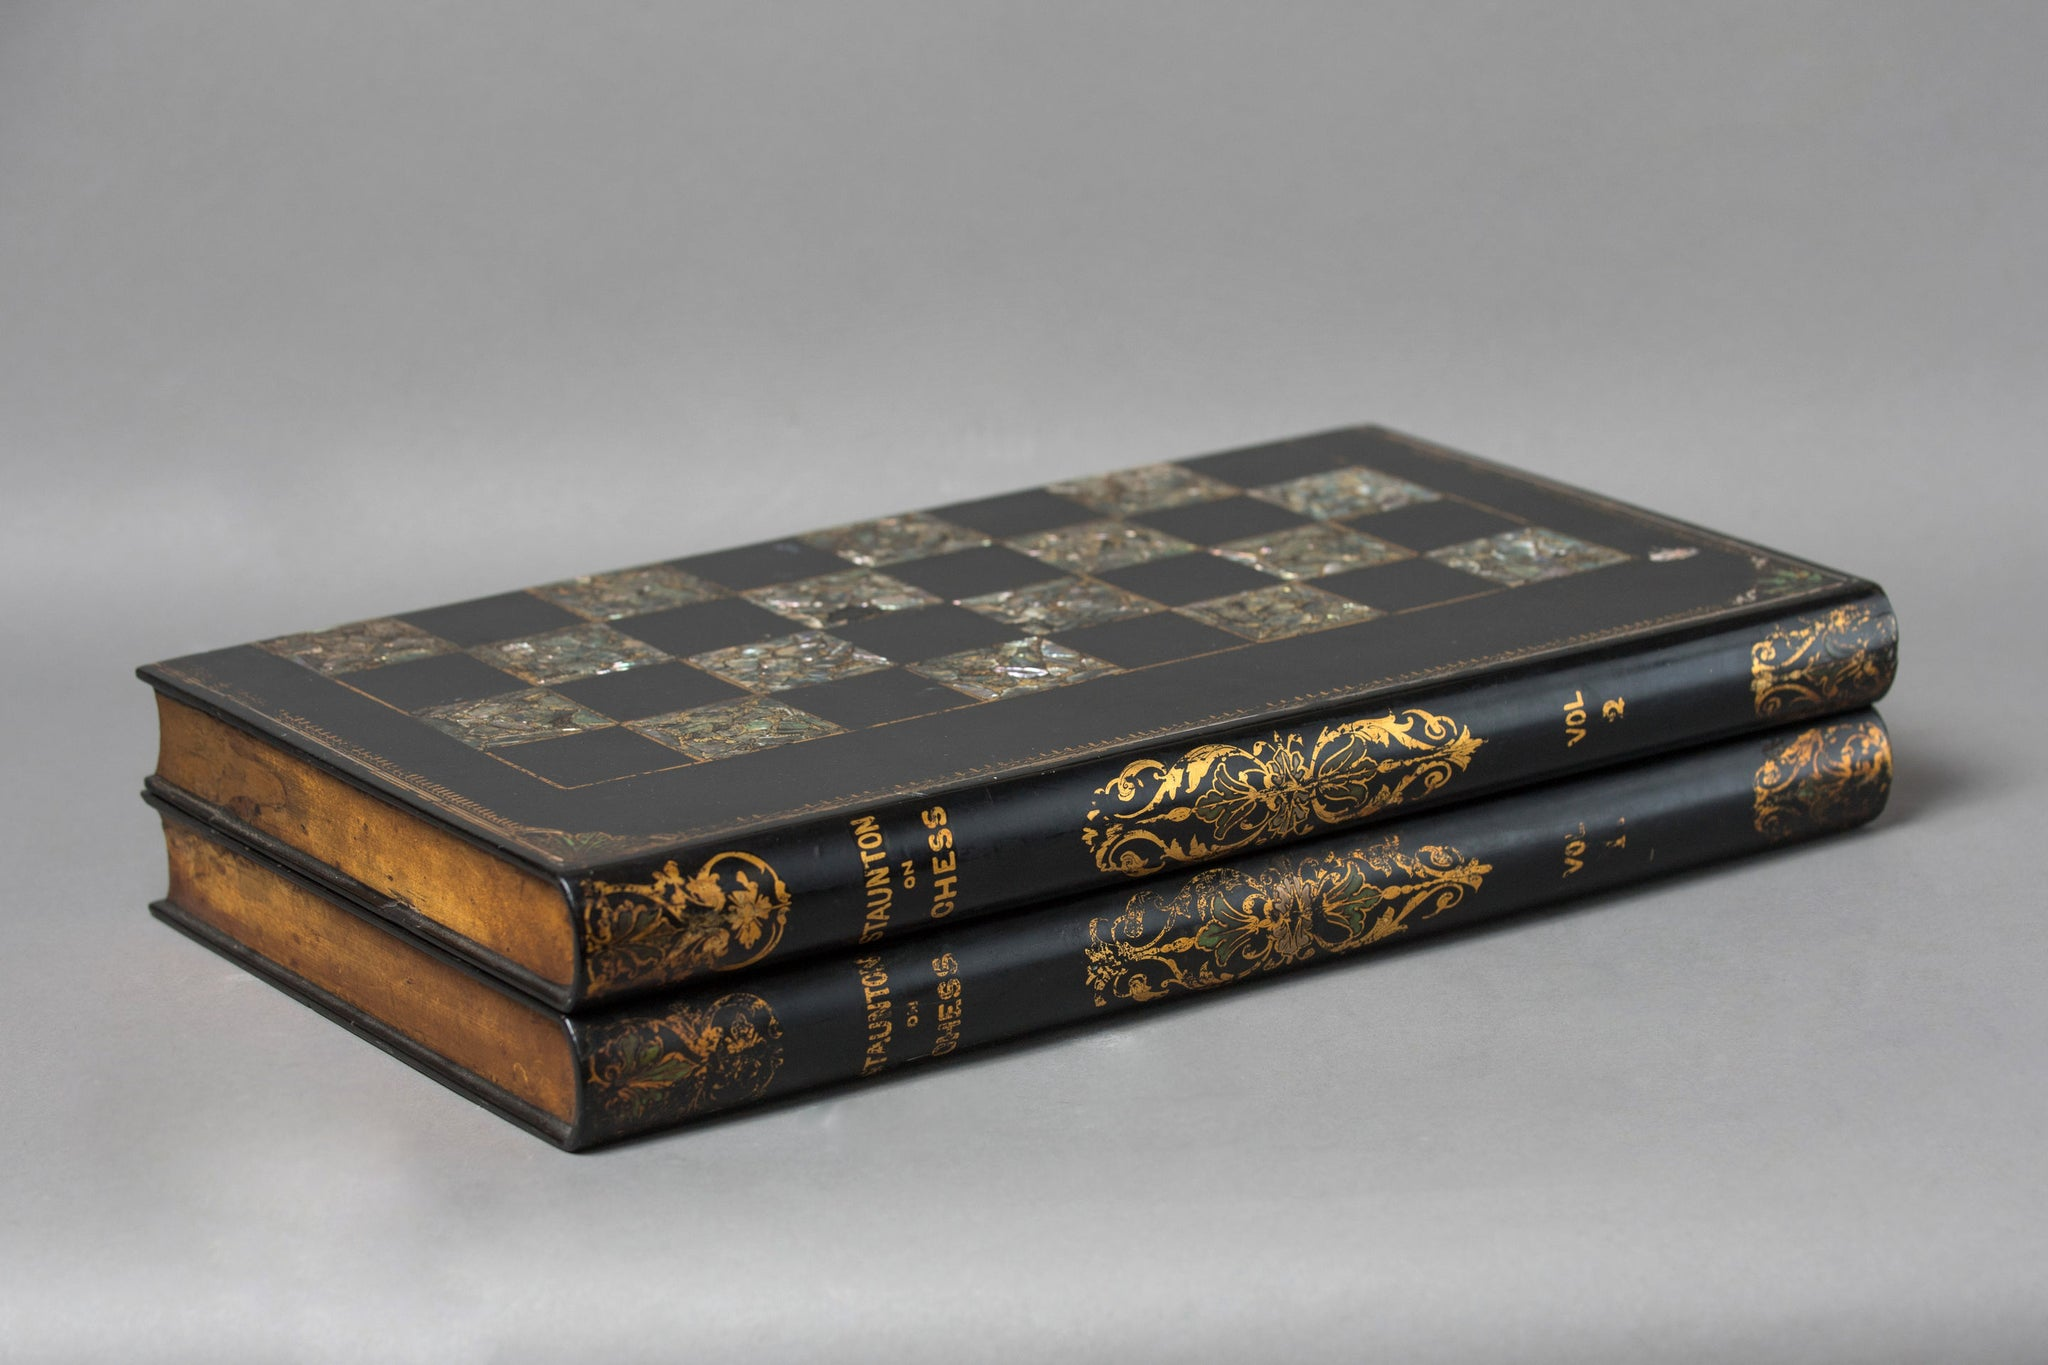 Staunton Chess & Backgammon Board in the Form of a Two Volume Folio